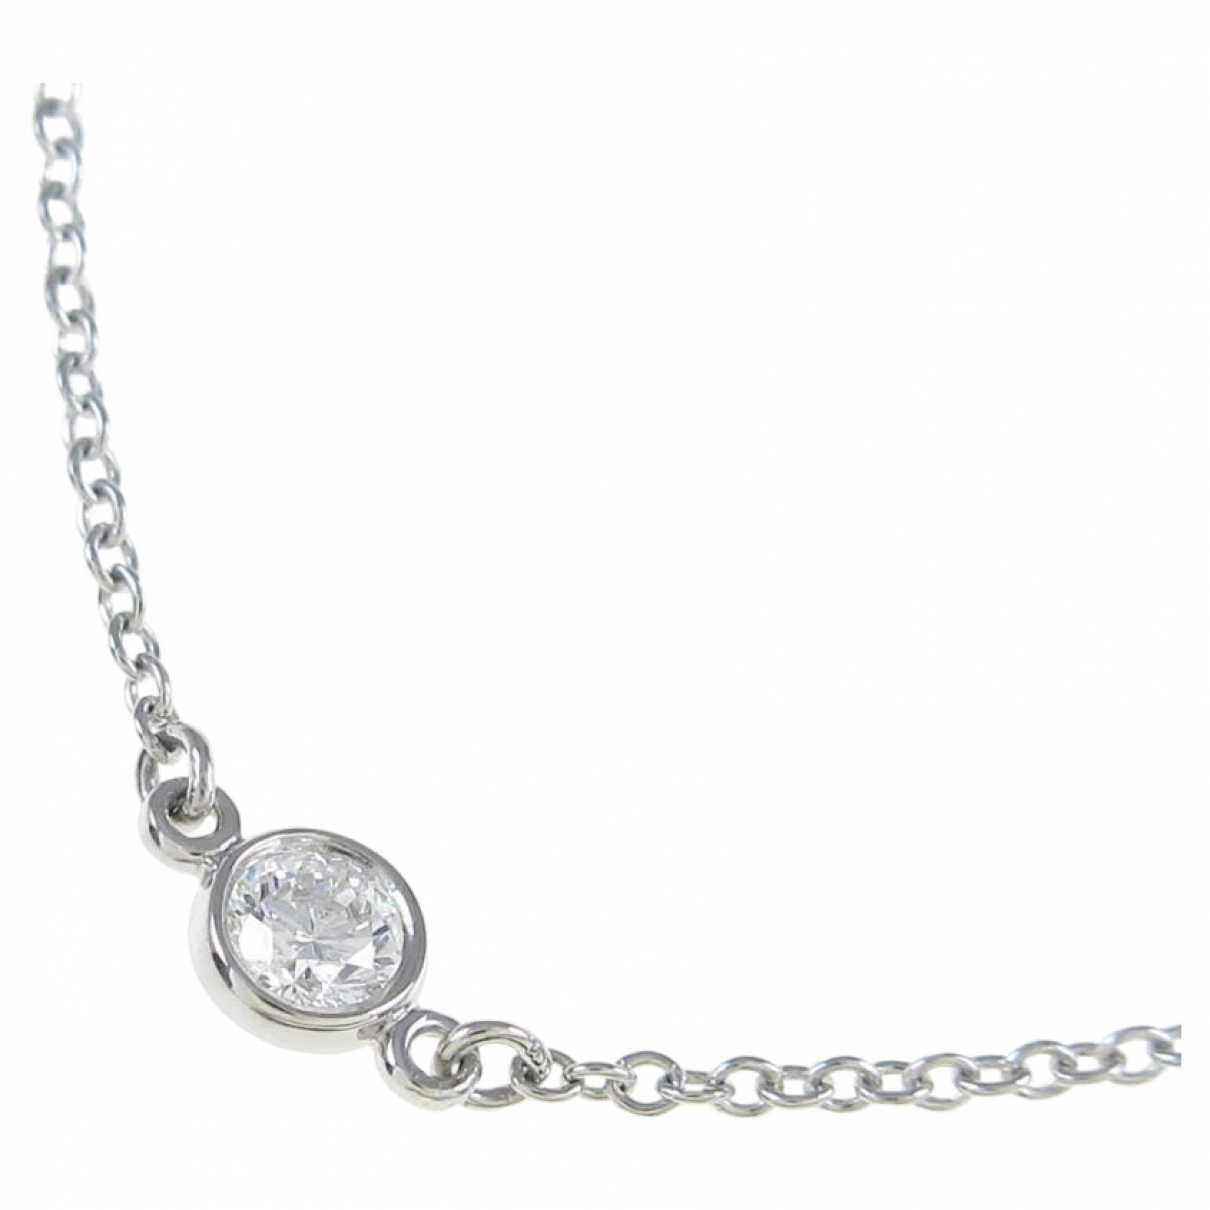 Collar Elsa Peretti  de Oro blanco Tiffany & Co